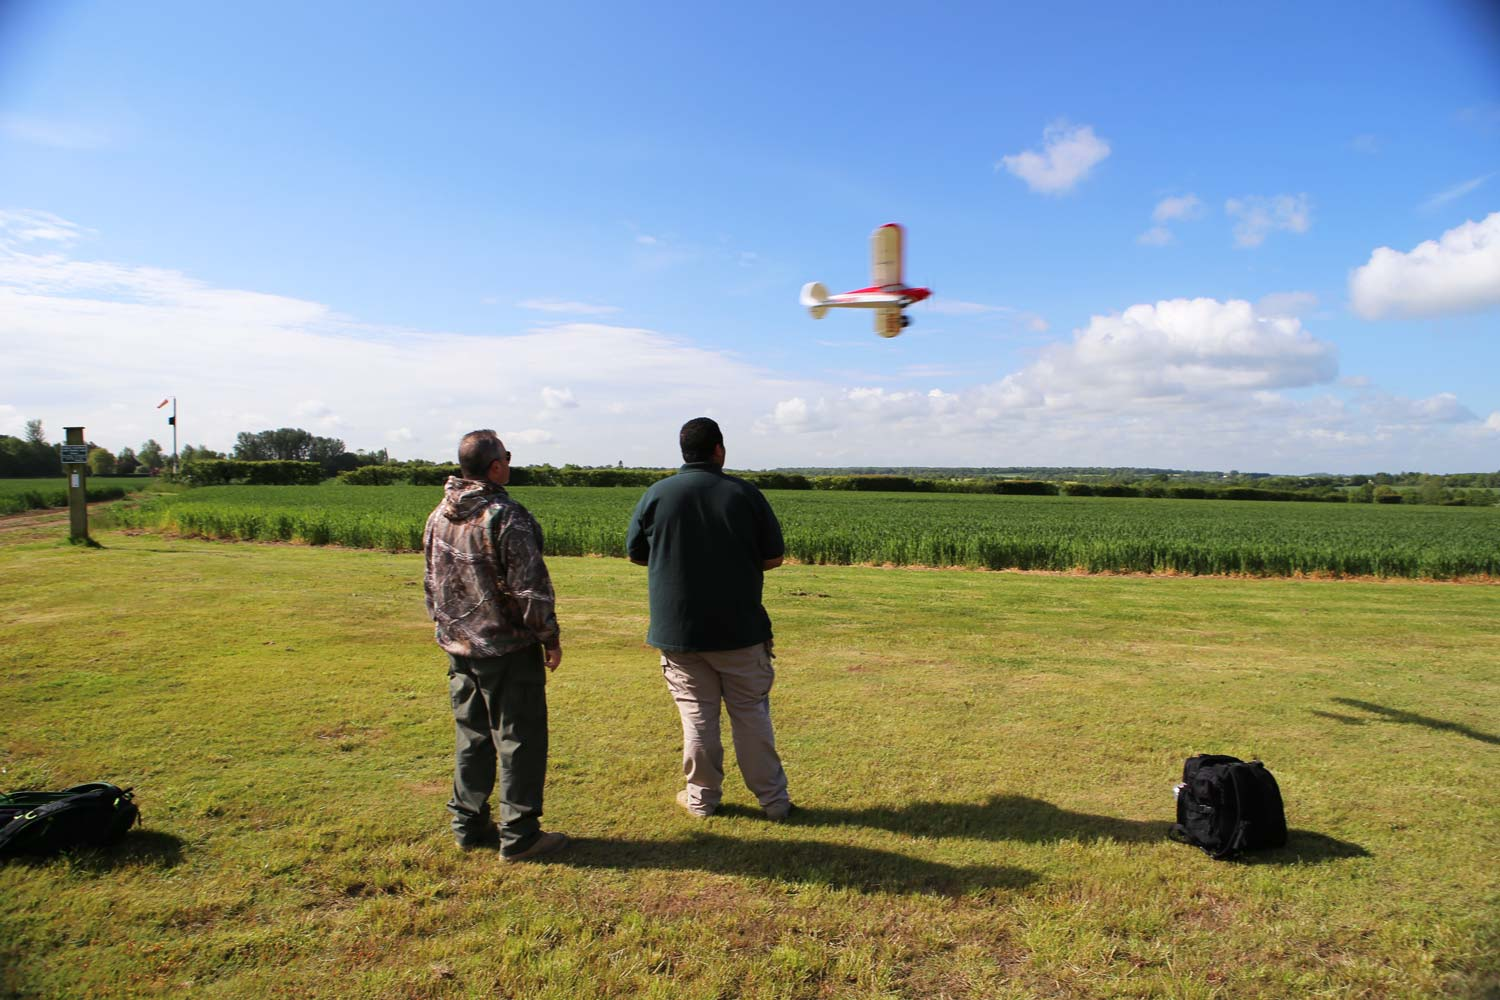 Customers flying a model aircraft around Pete's Airgun Farm in Essex